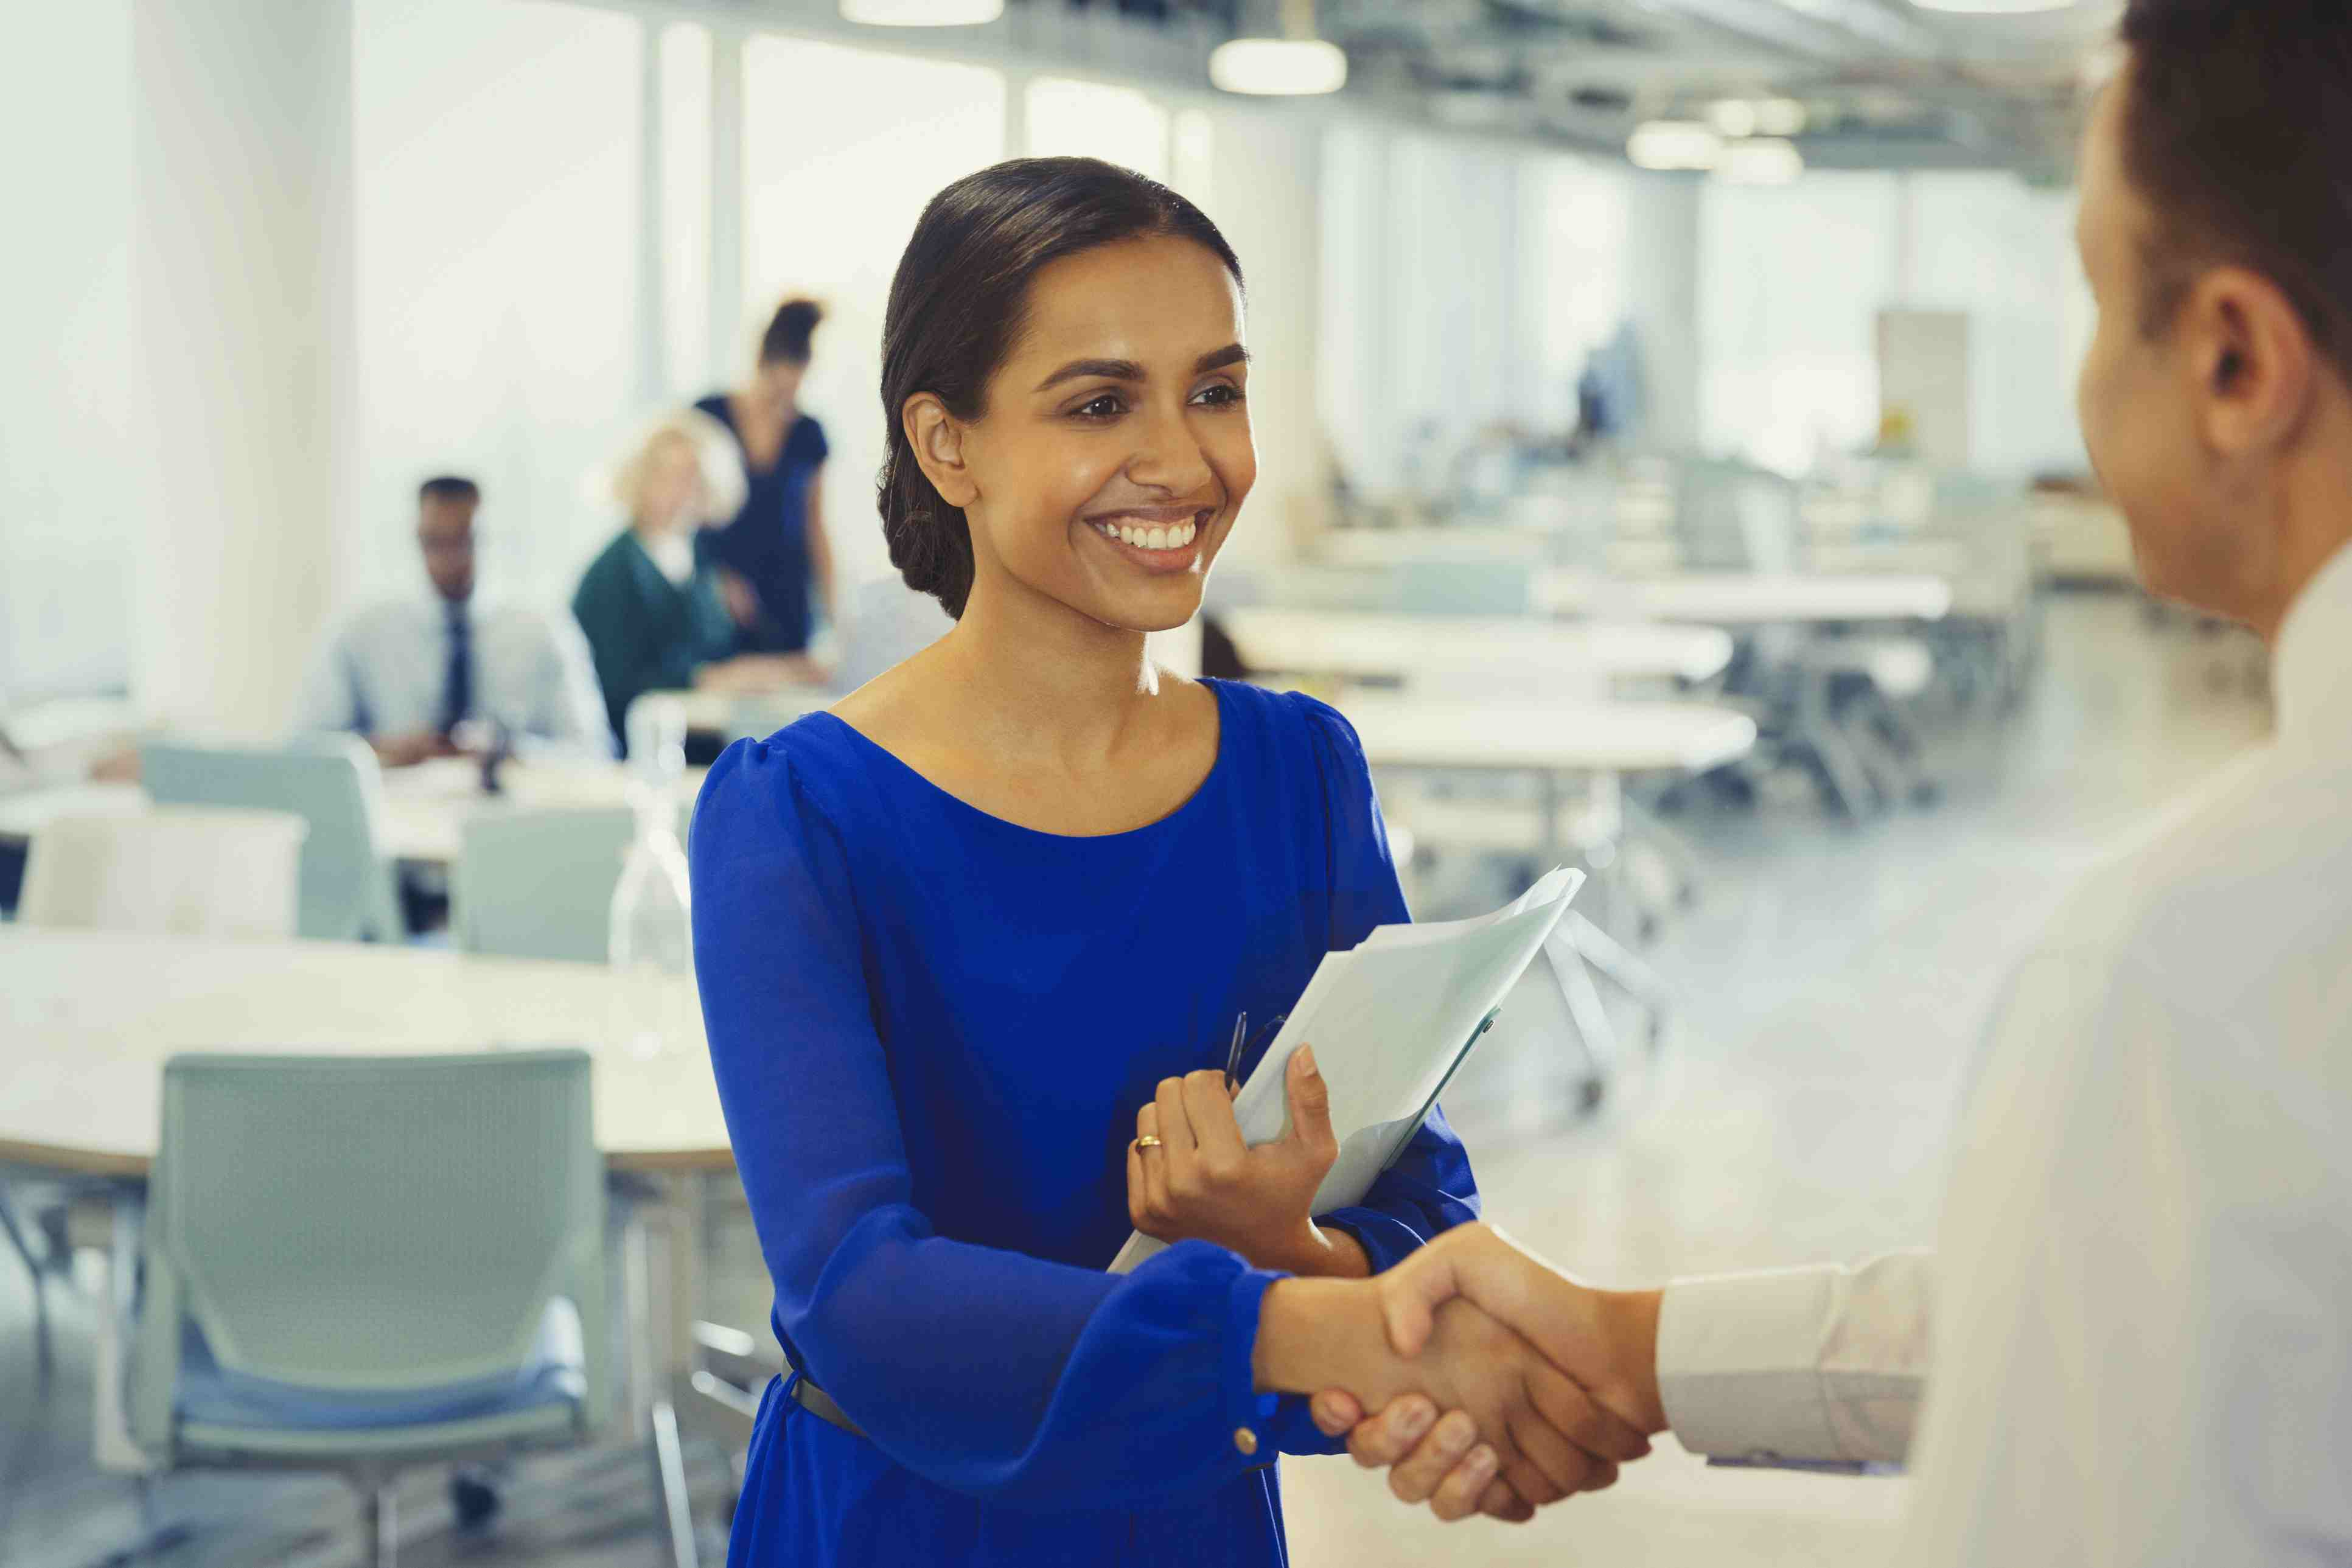 Smiling businesswoman shaking hands with businessman in office